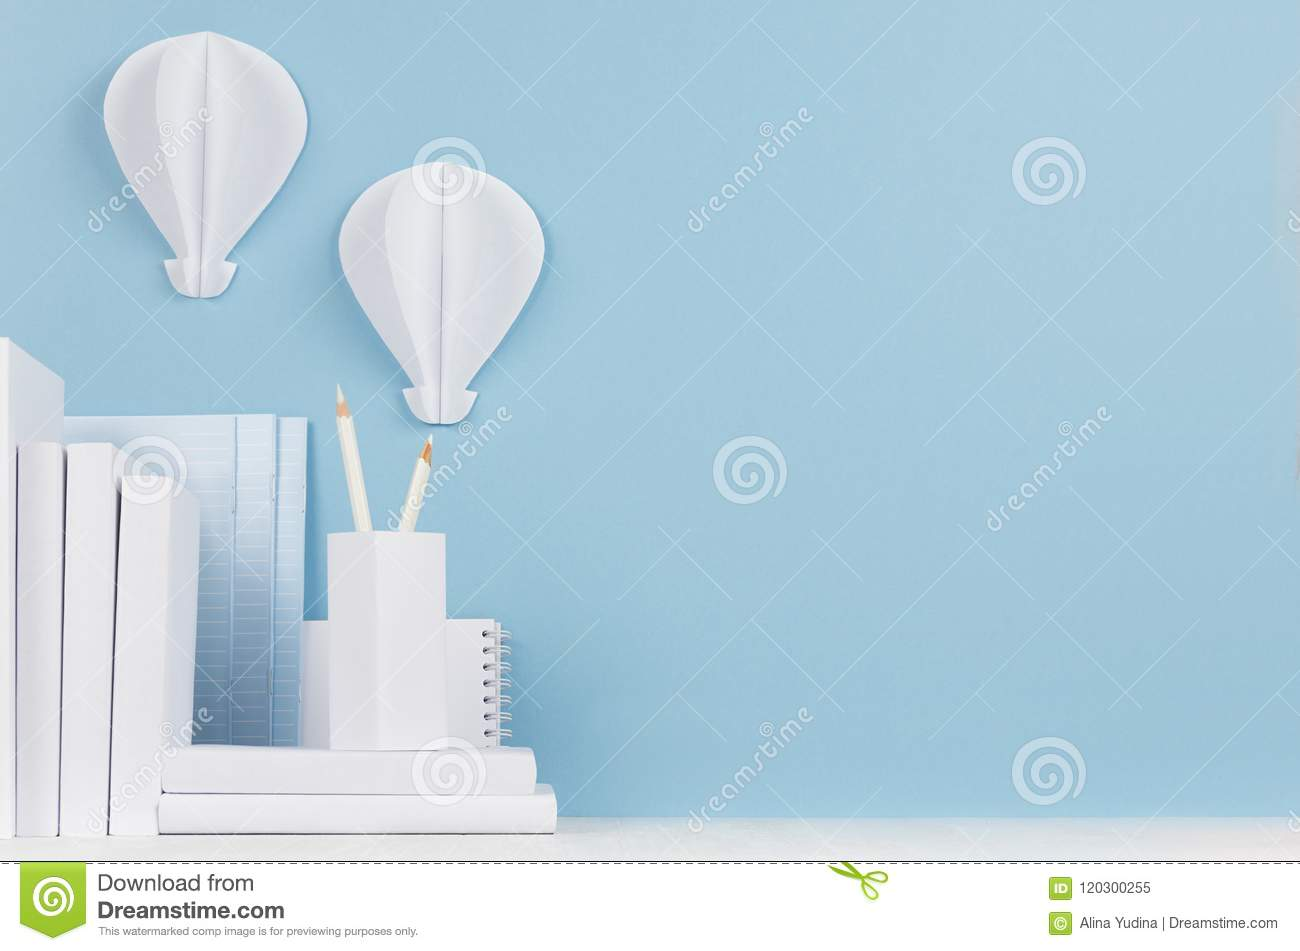 Modern style workplace - white stationery and decorative paper balloons on soft blue background and light desk.